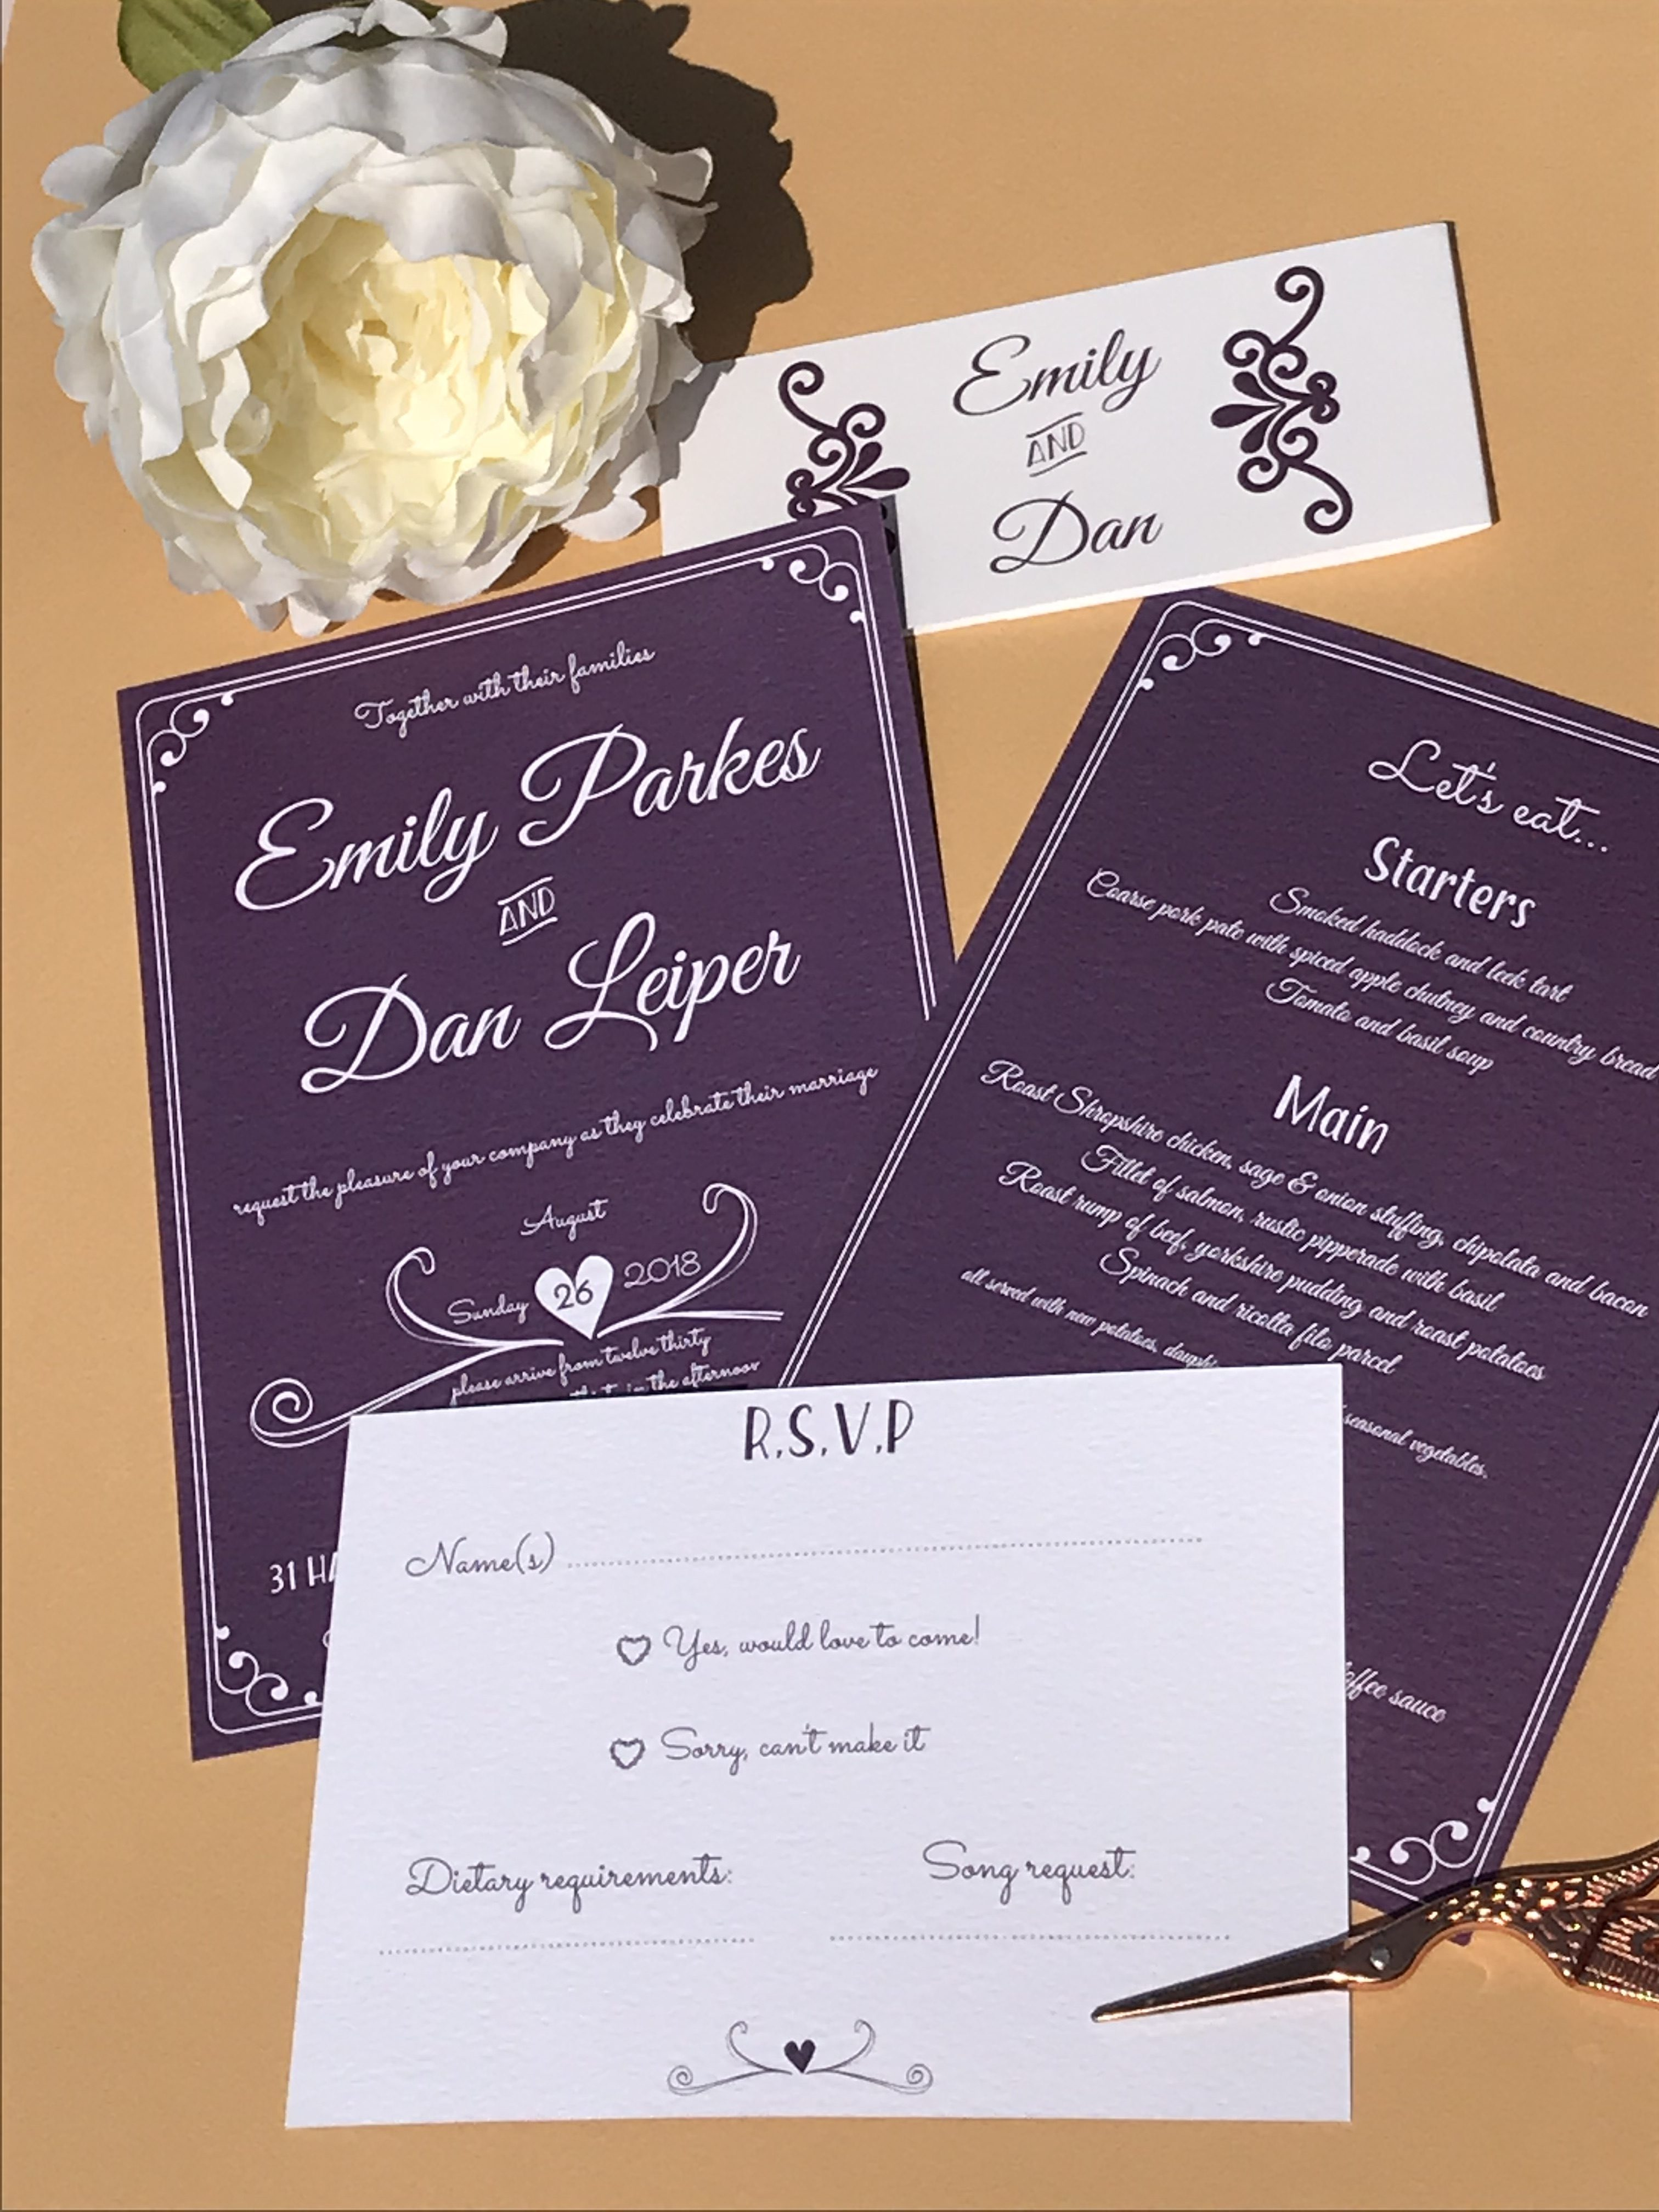 Lavender and Lace wedding invites